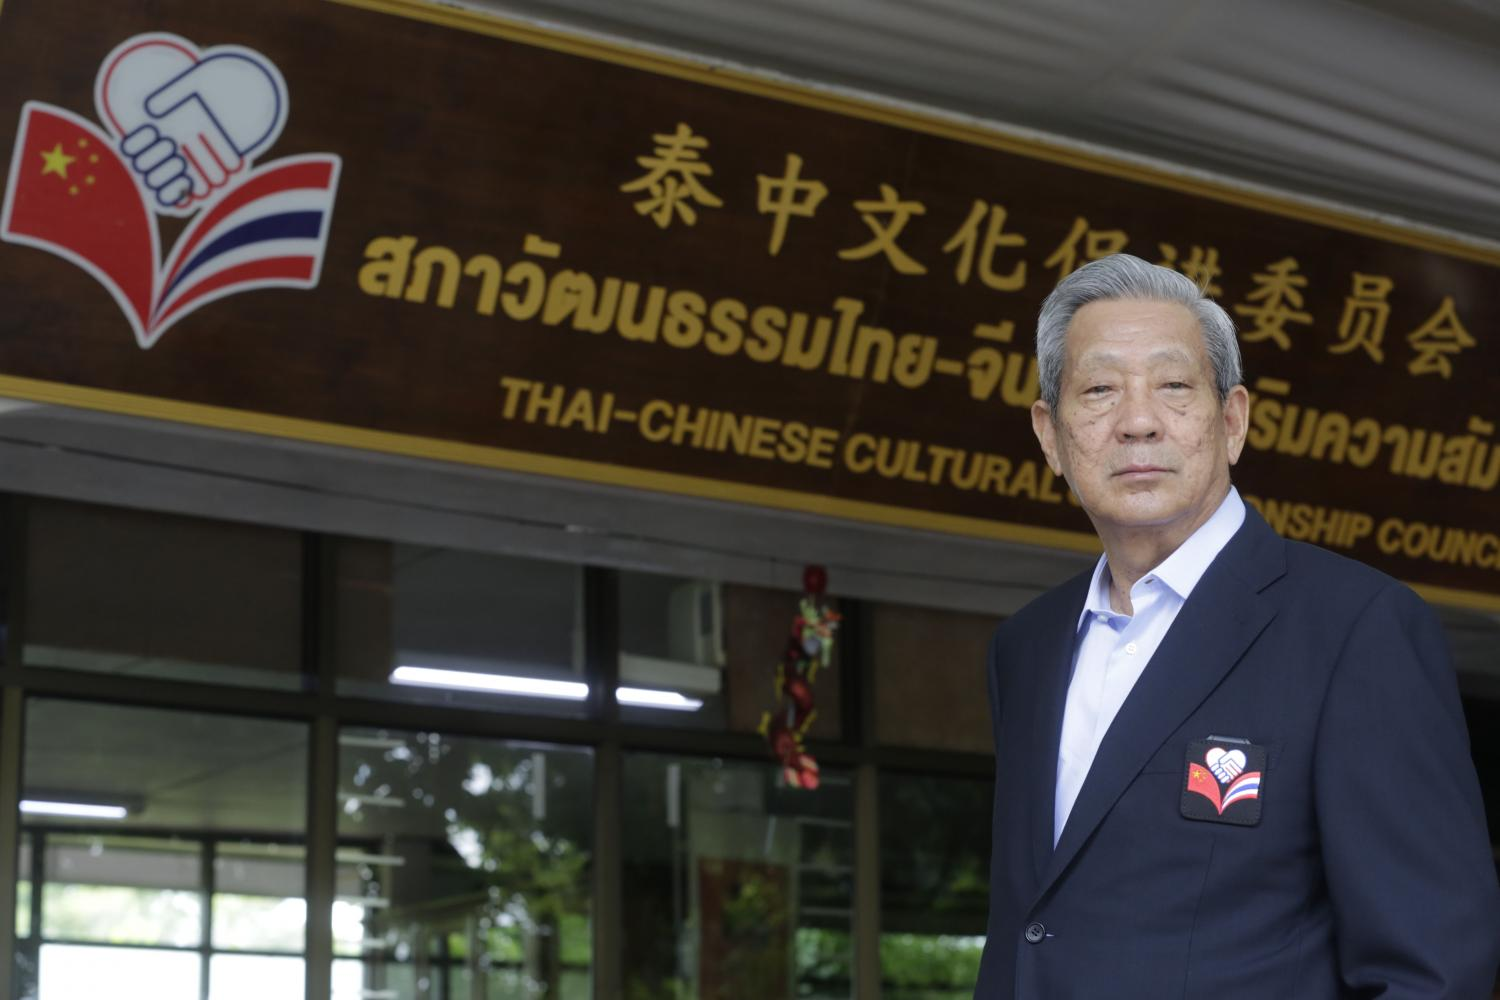 Phinij Jarusombat, the president of the Thai-Chinese Cultural and Relationship Council, affirms the Sino-Thai relationship on the 45th anniversary of official ties, calling for both sides to soldier on all fronts.Pornprom Satrabhaya